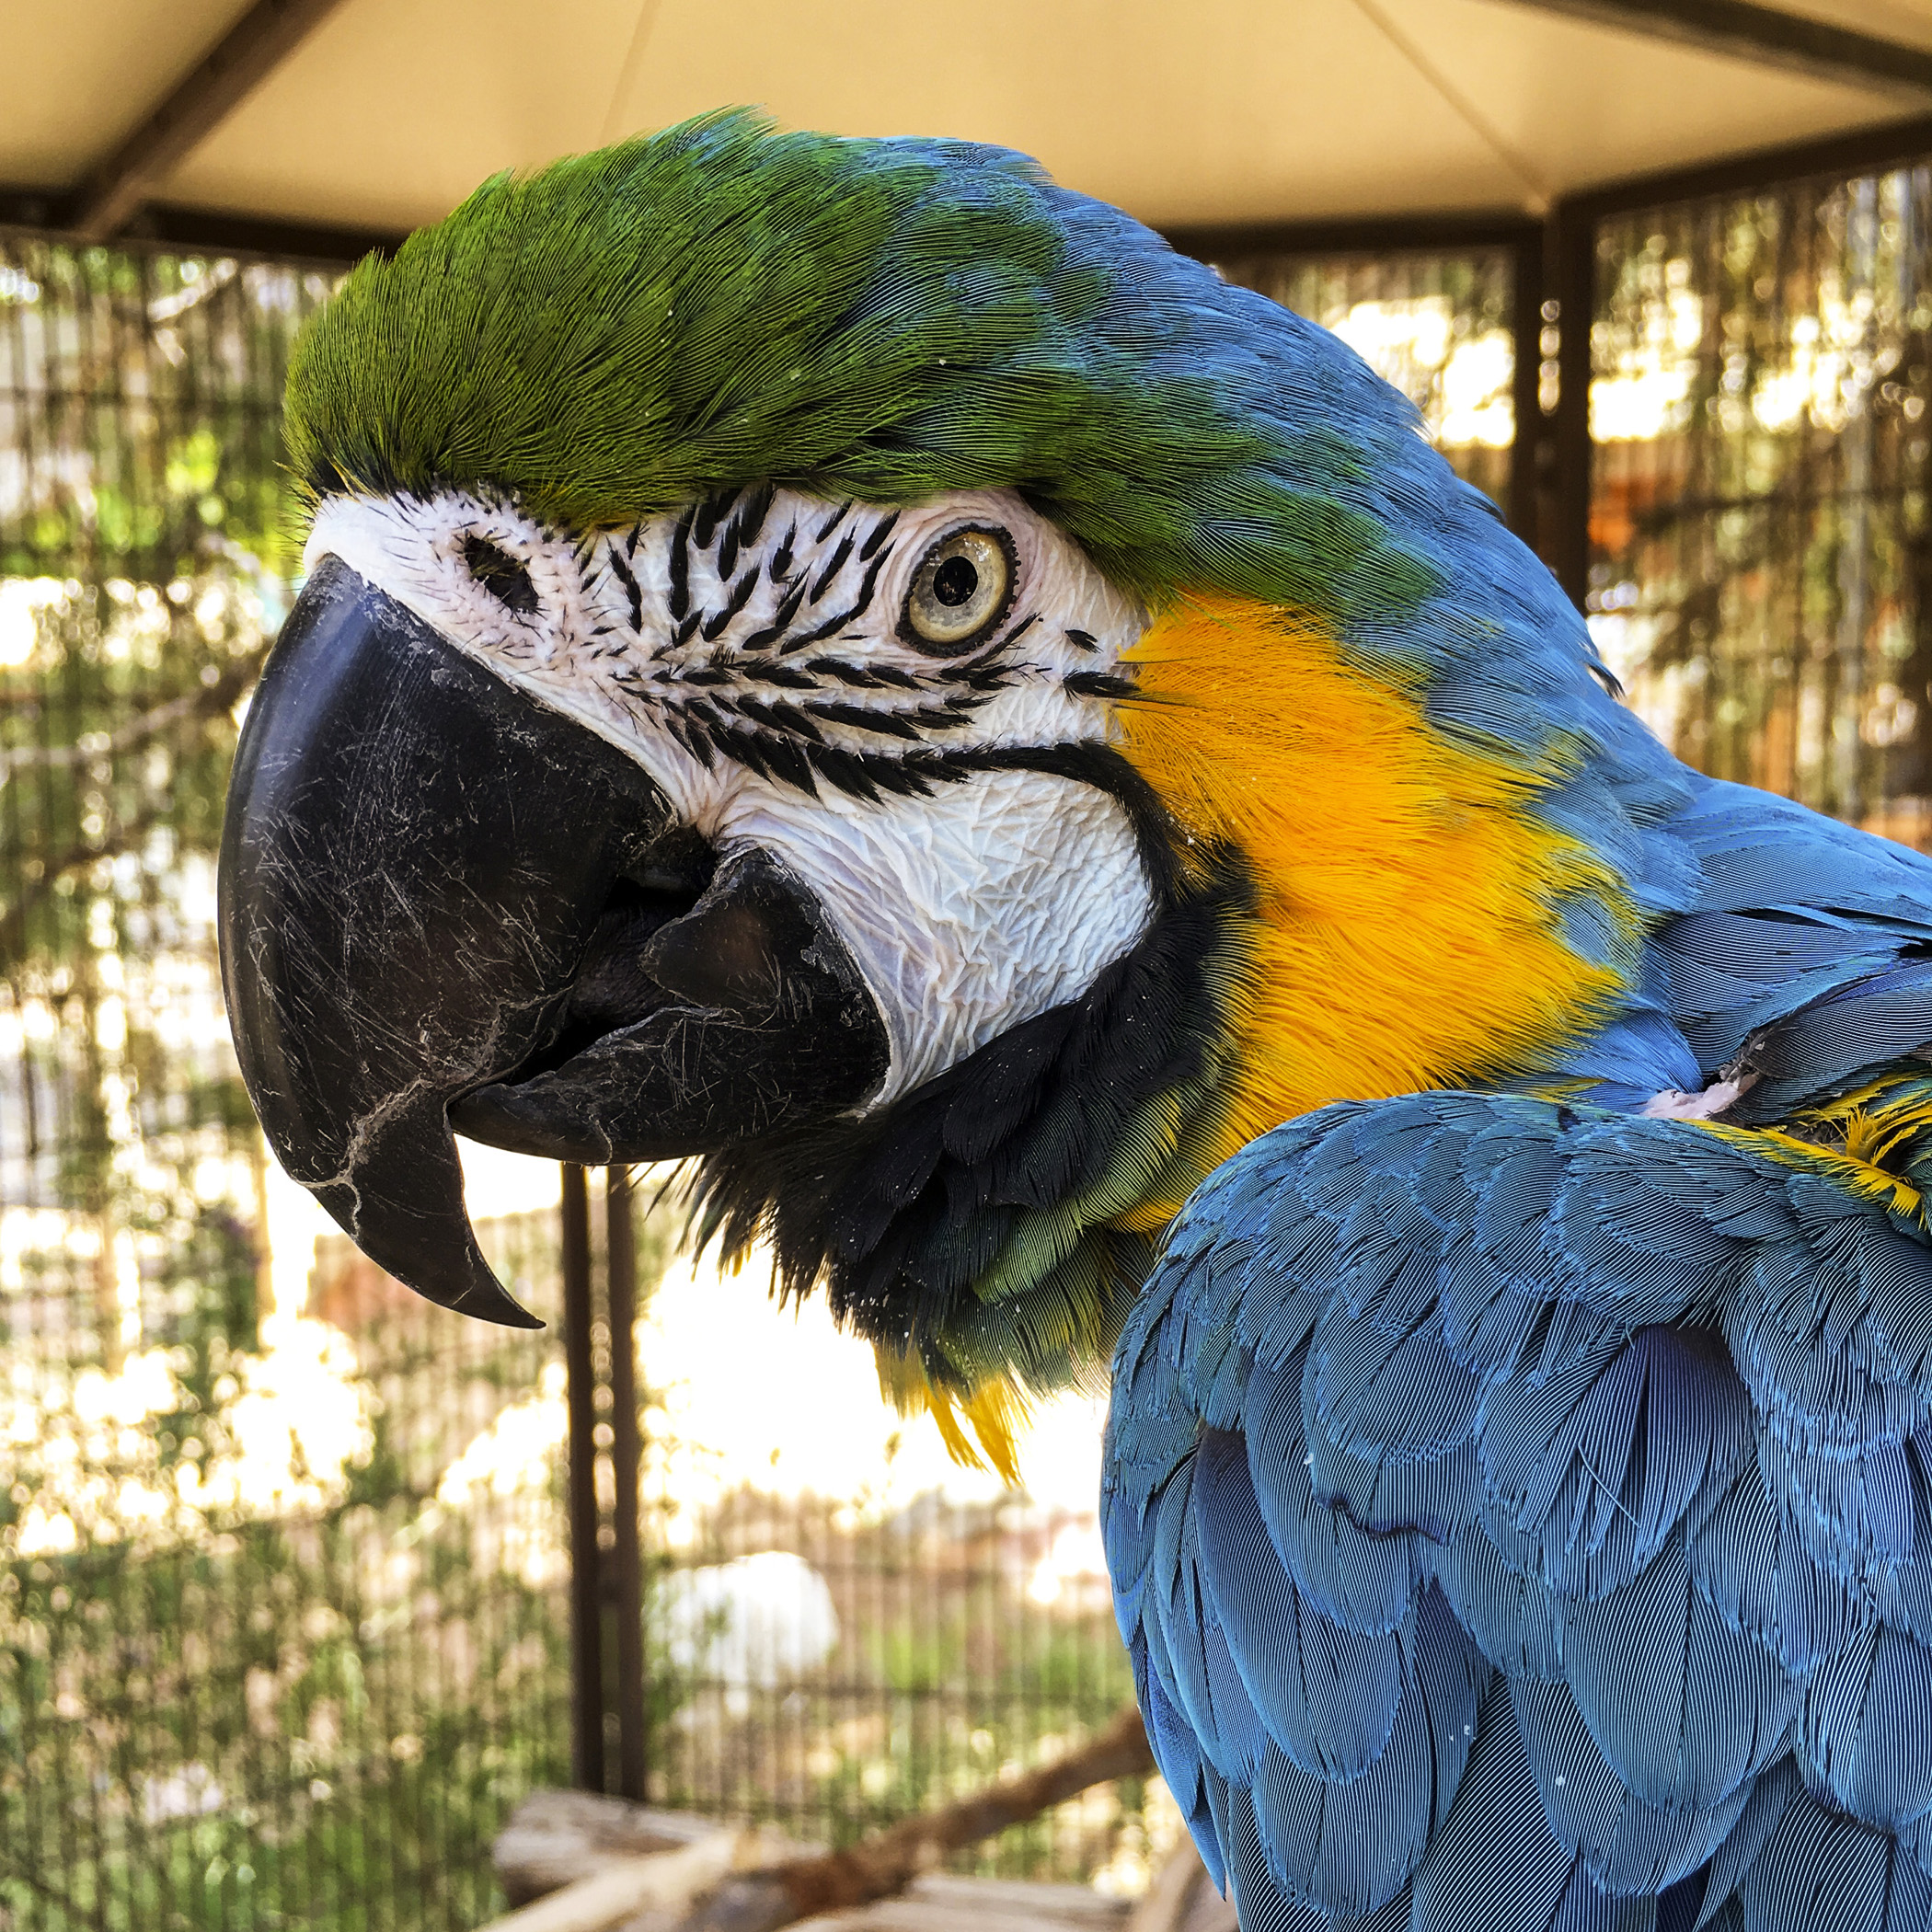 Small parrots, like cockatiels, may live to be 20–30 years old. Larger parrots, like cockatoos or macaws, may live to be 60–80 years old. So, adopting a parrot is truly a lifetime commitment. While adopting a dog or a cat is a commitment to the lifetime of the animal (generally 10–15 years), adopting a parrot is a commitment for your lifetime – and beyond. If you think your parrot might outlive you, you will need to arrange for a future home for your parrot after you are no longer around.